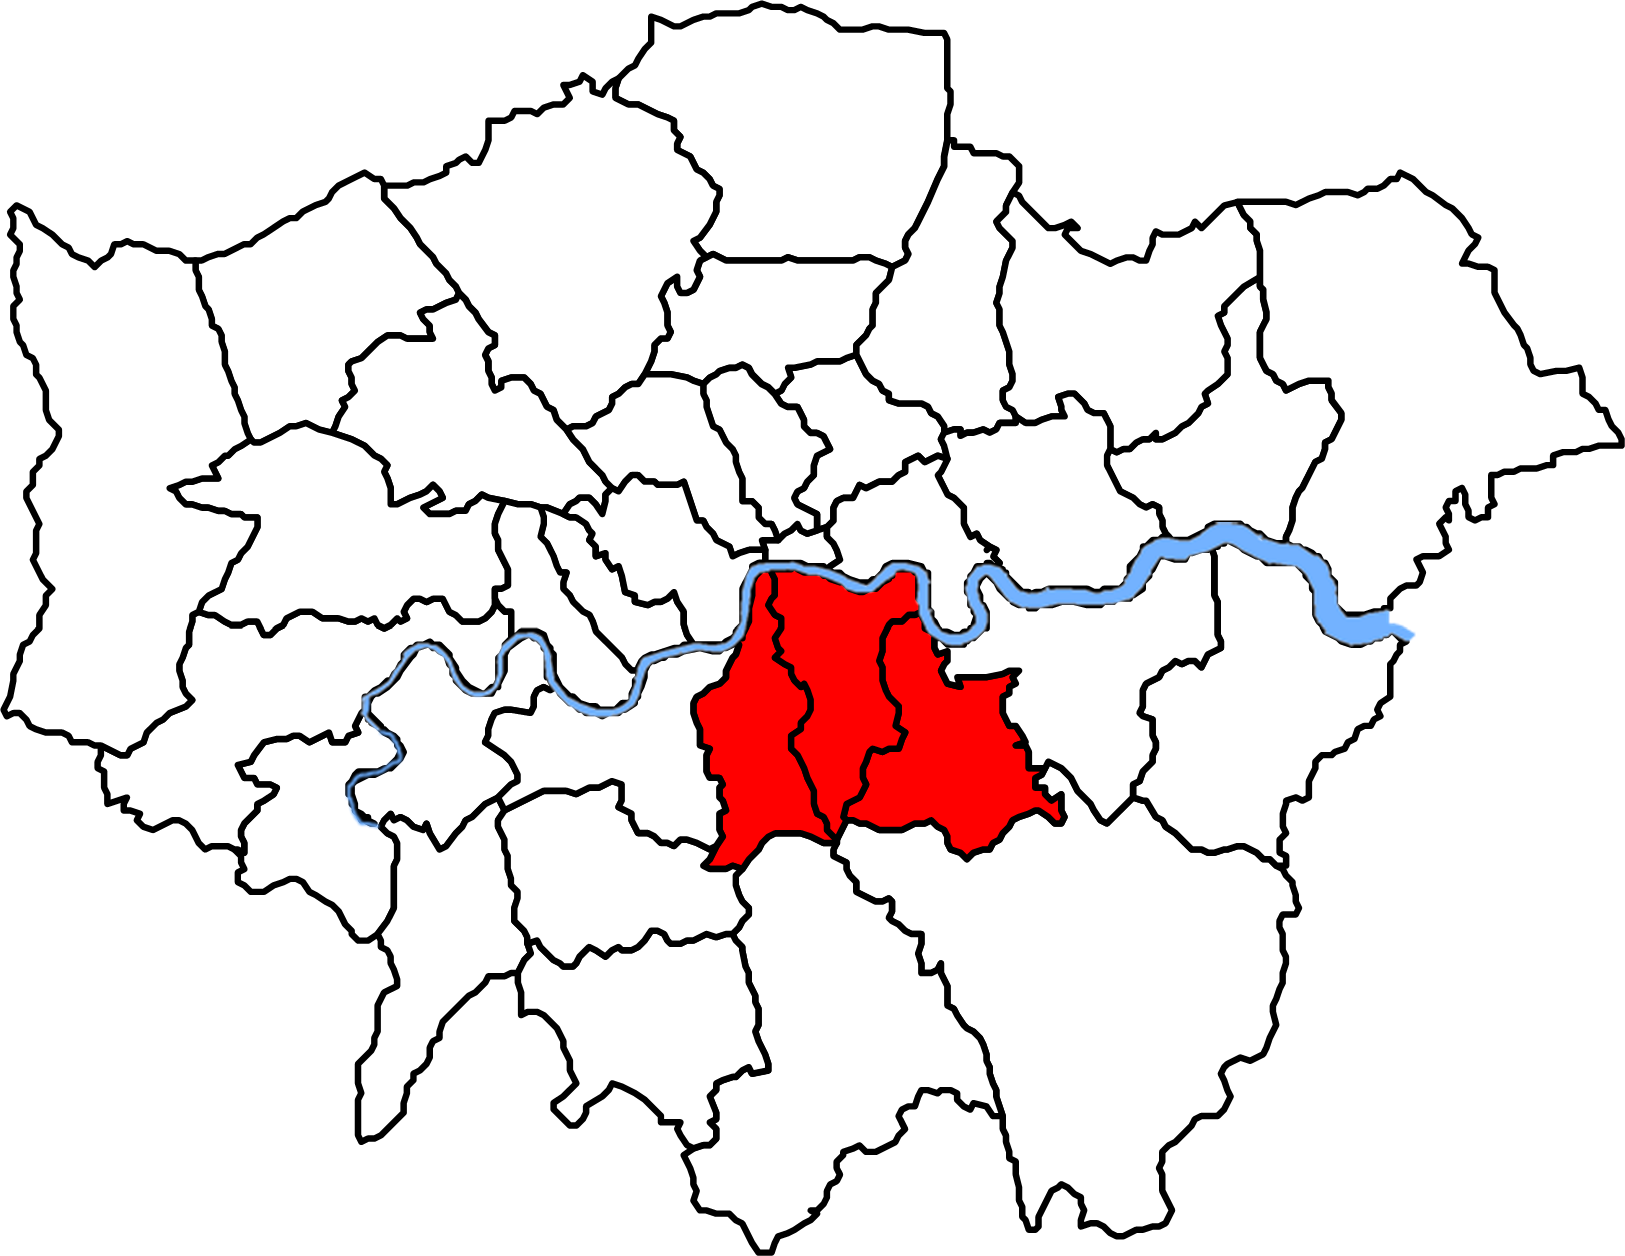 Map of London boroughs showing catchment areas for the hospital cohort.